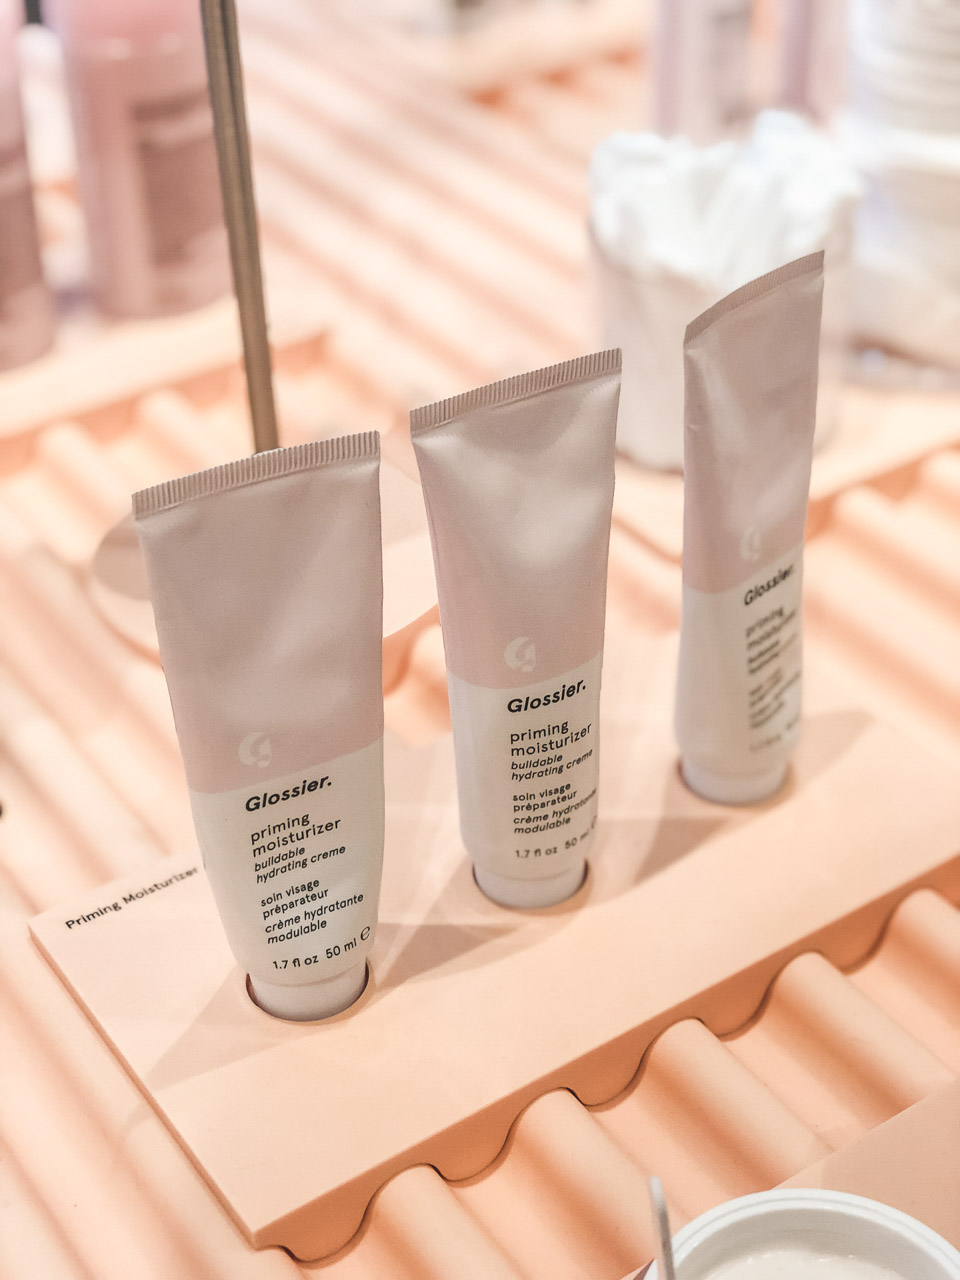 Priming moisturisers on display inside the NYC store